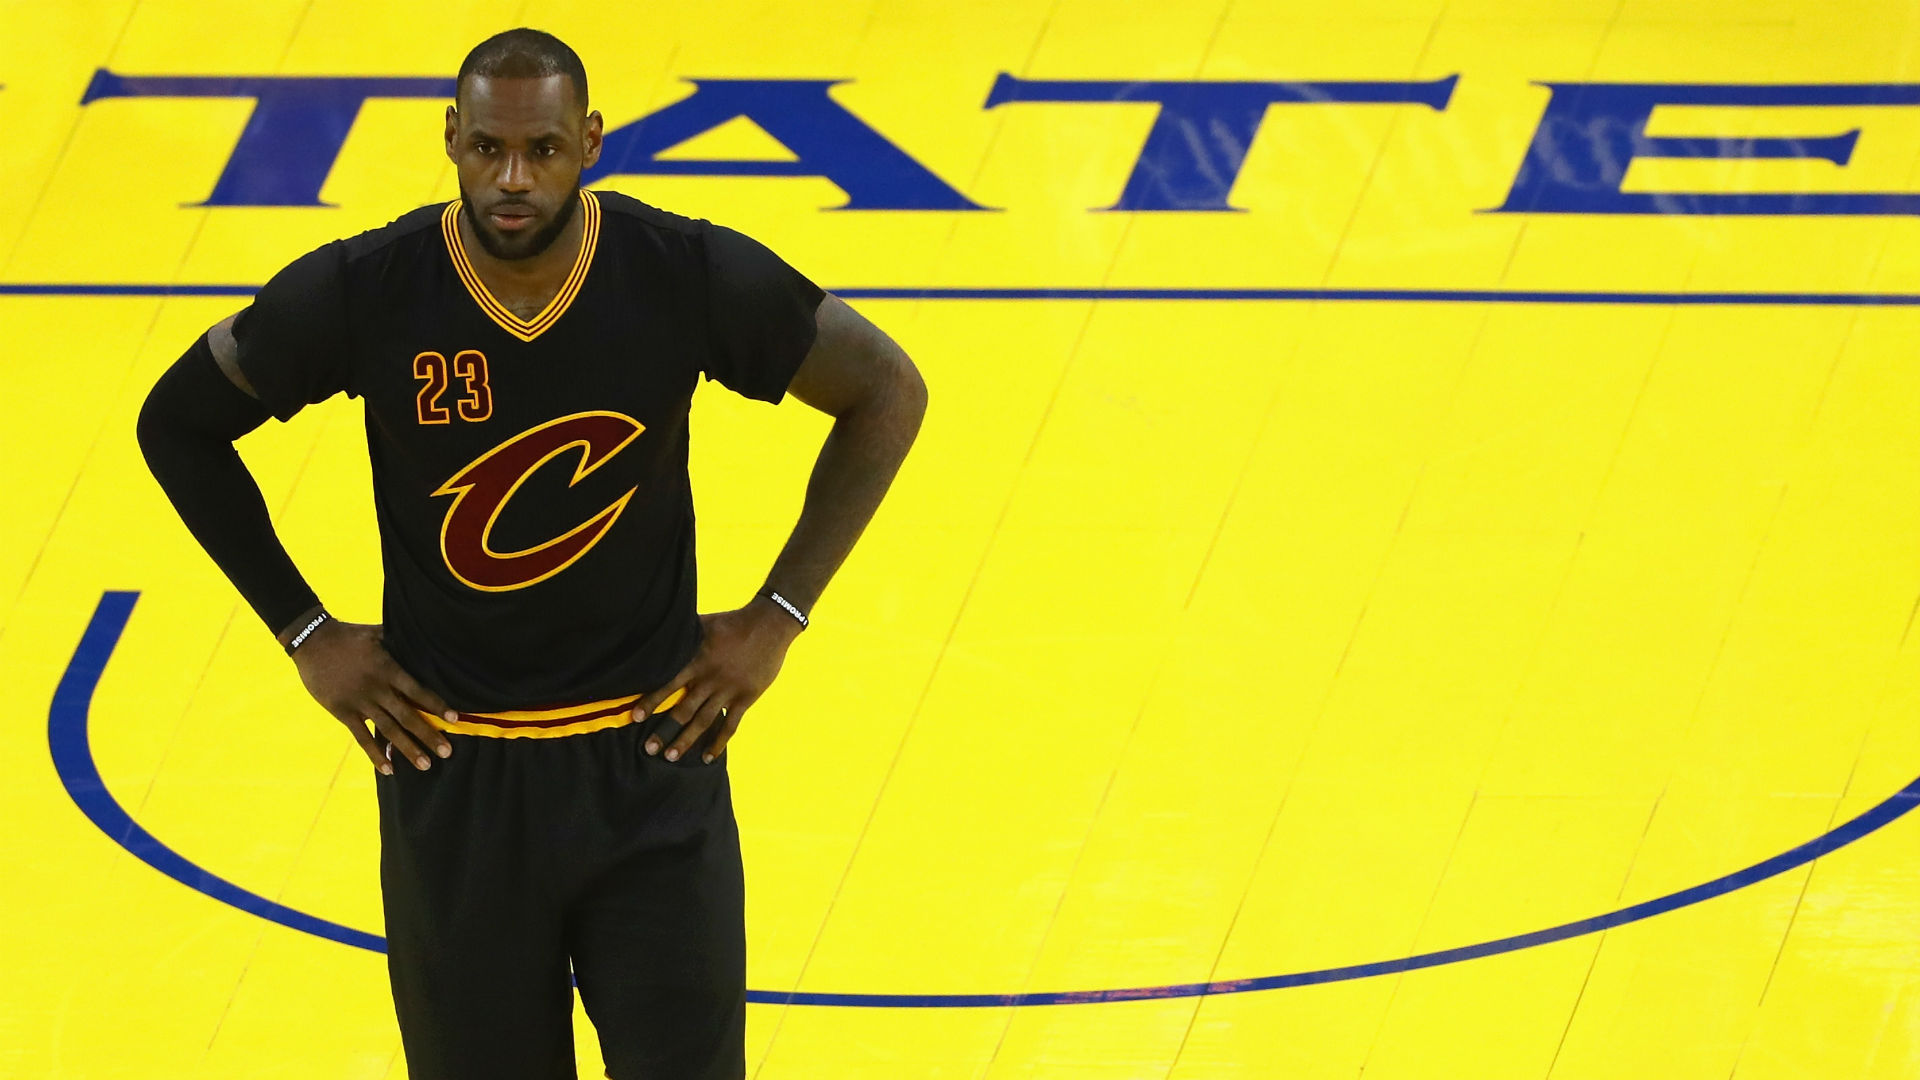 lebron james black cavs jersey